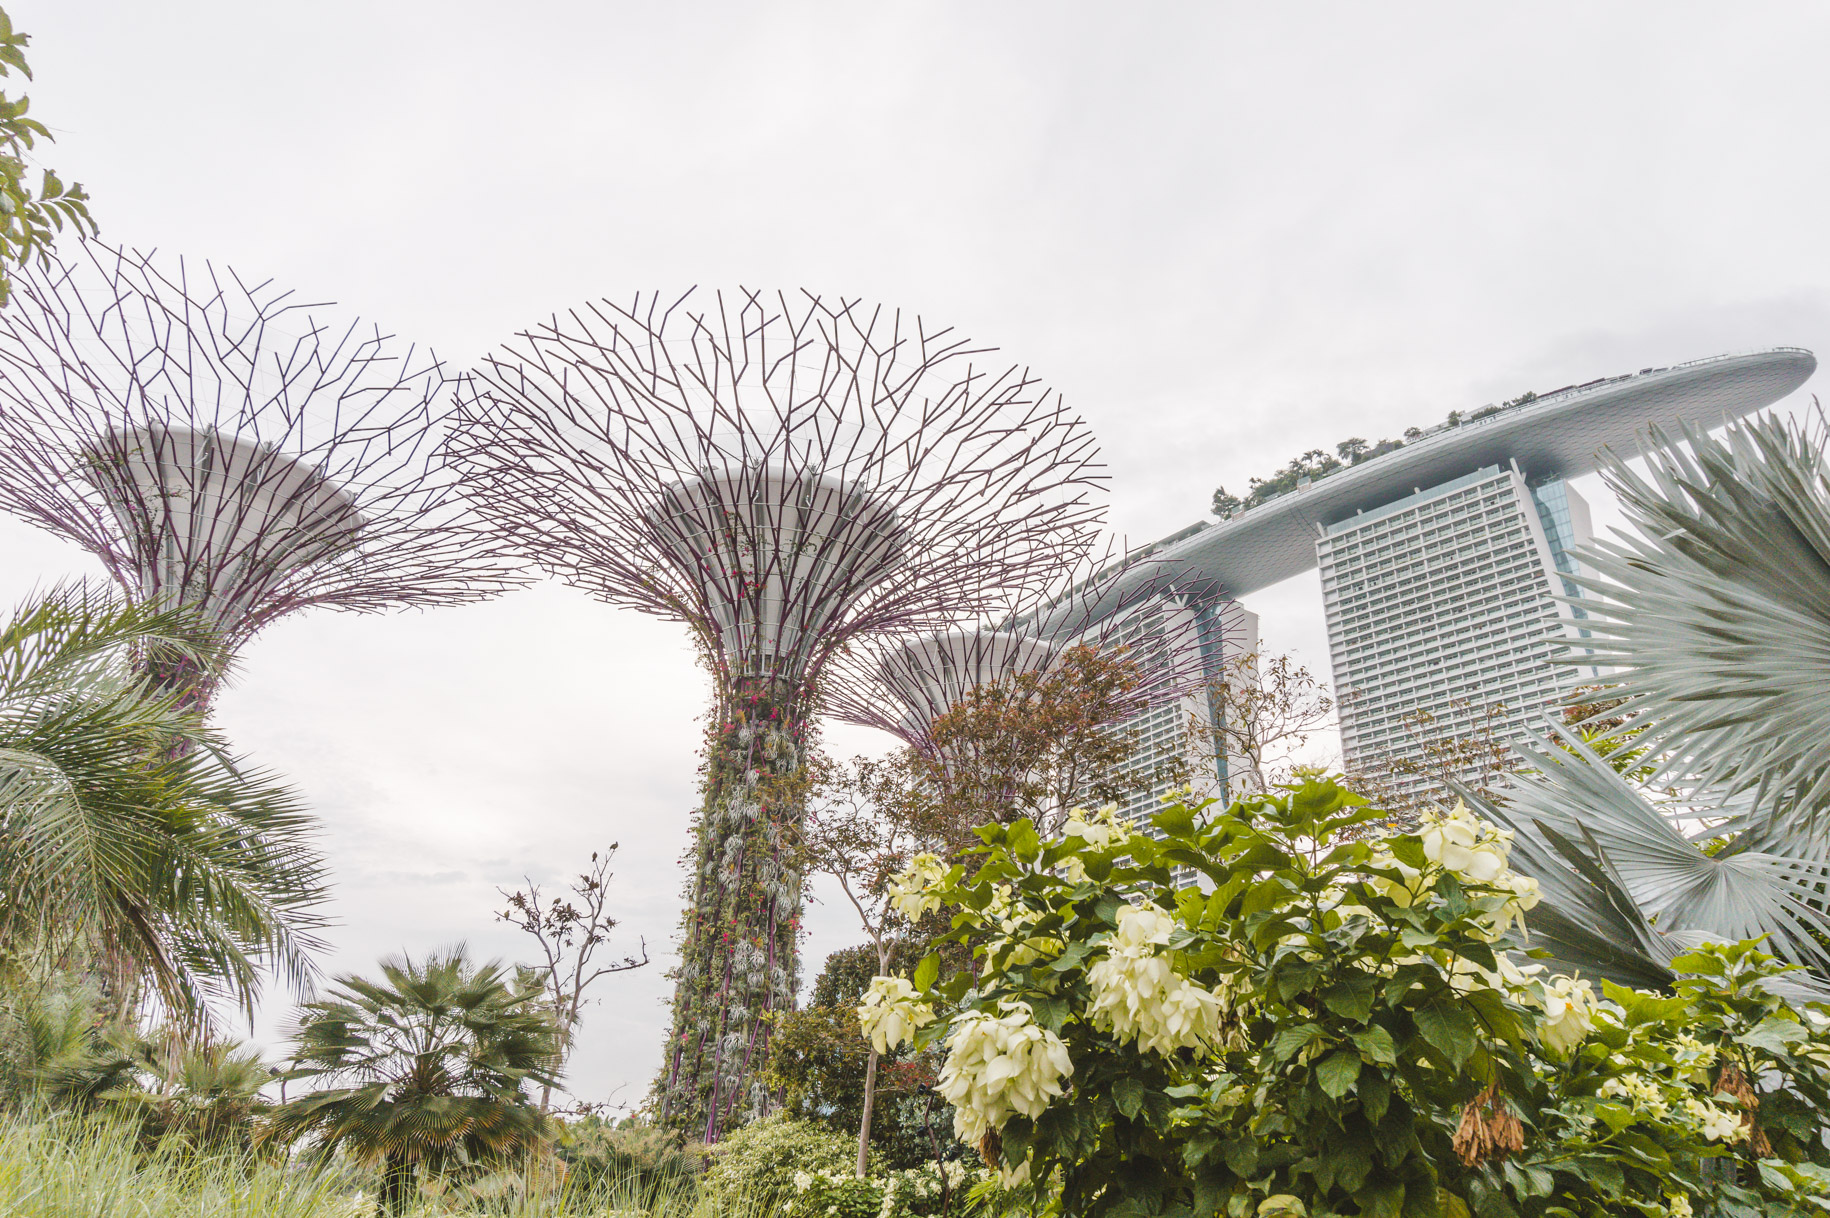 Singapore photos: looking up at Supertree Grove in Gardens by the Bay and Marina Sands.